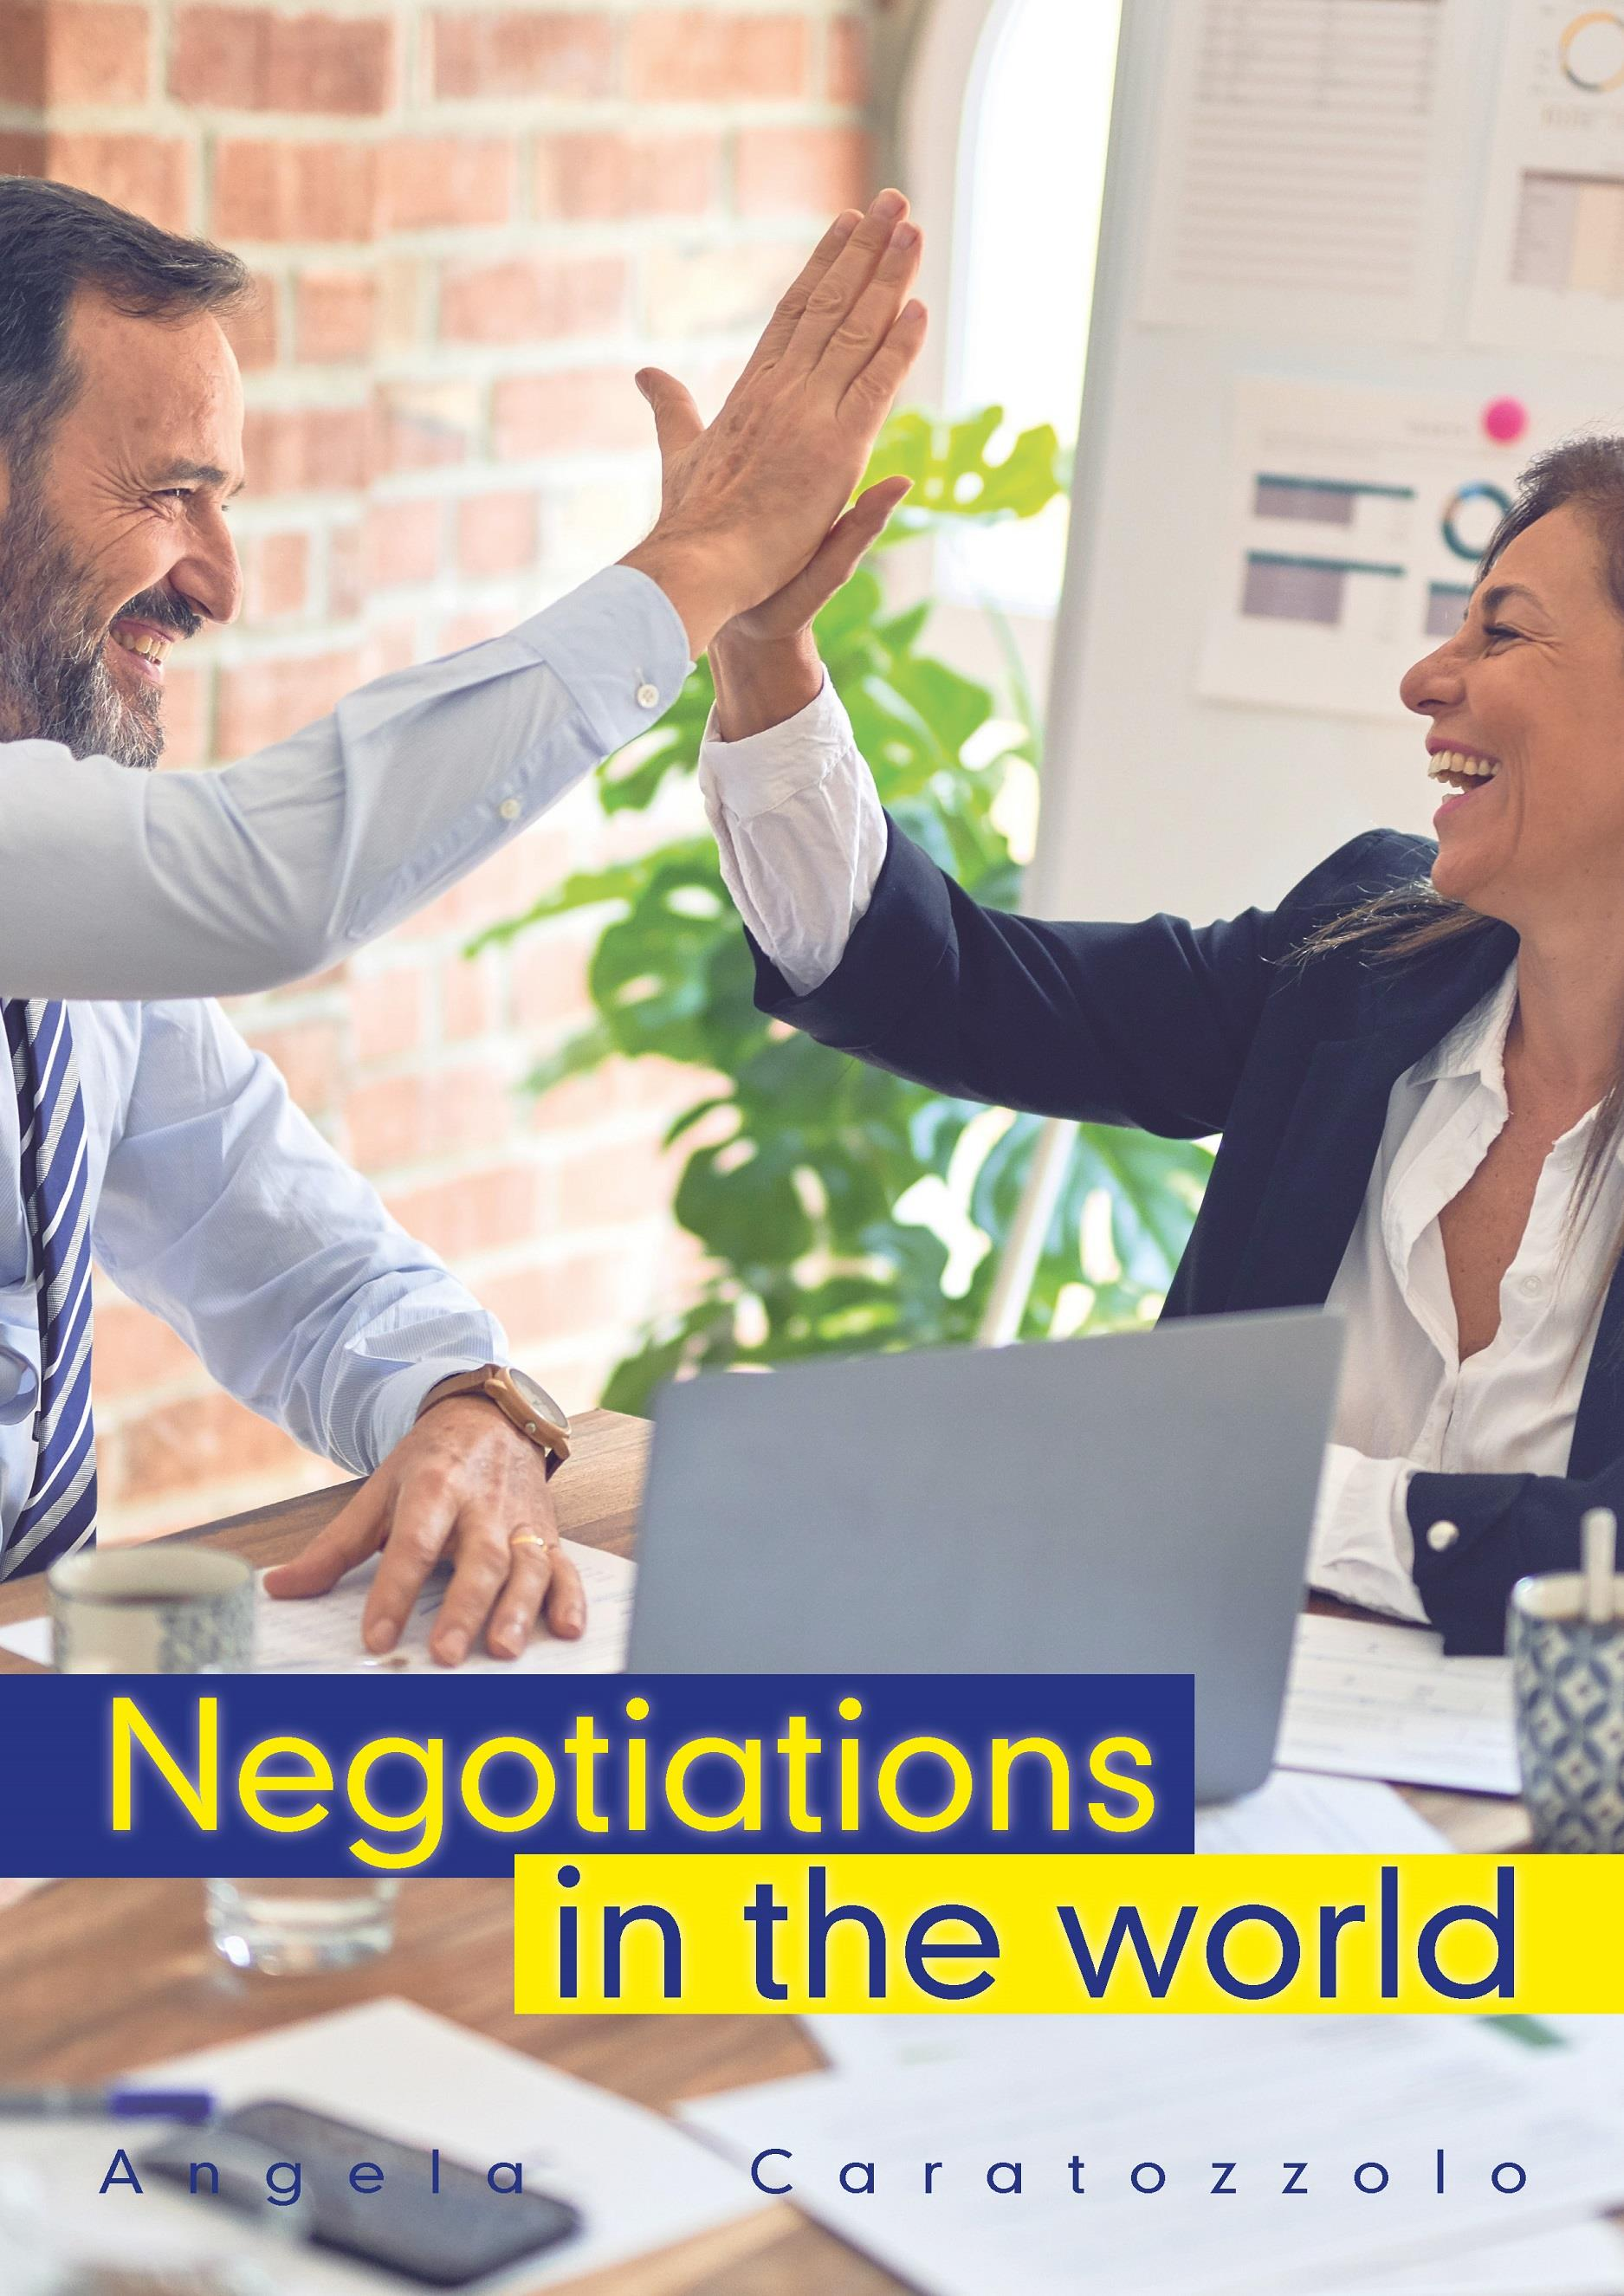 Negotiations in the world